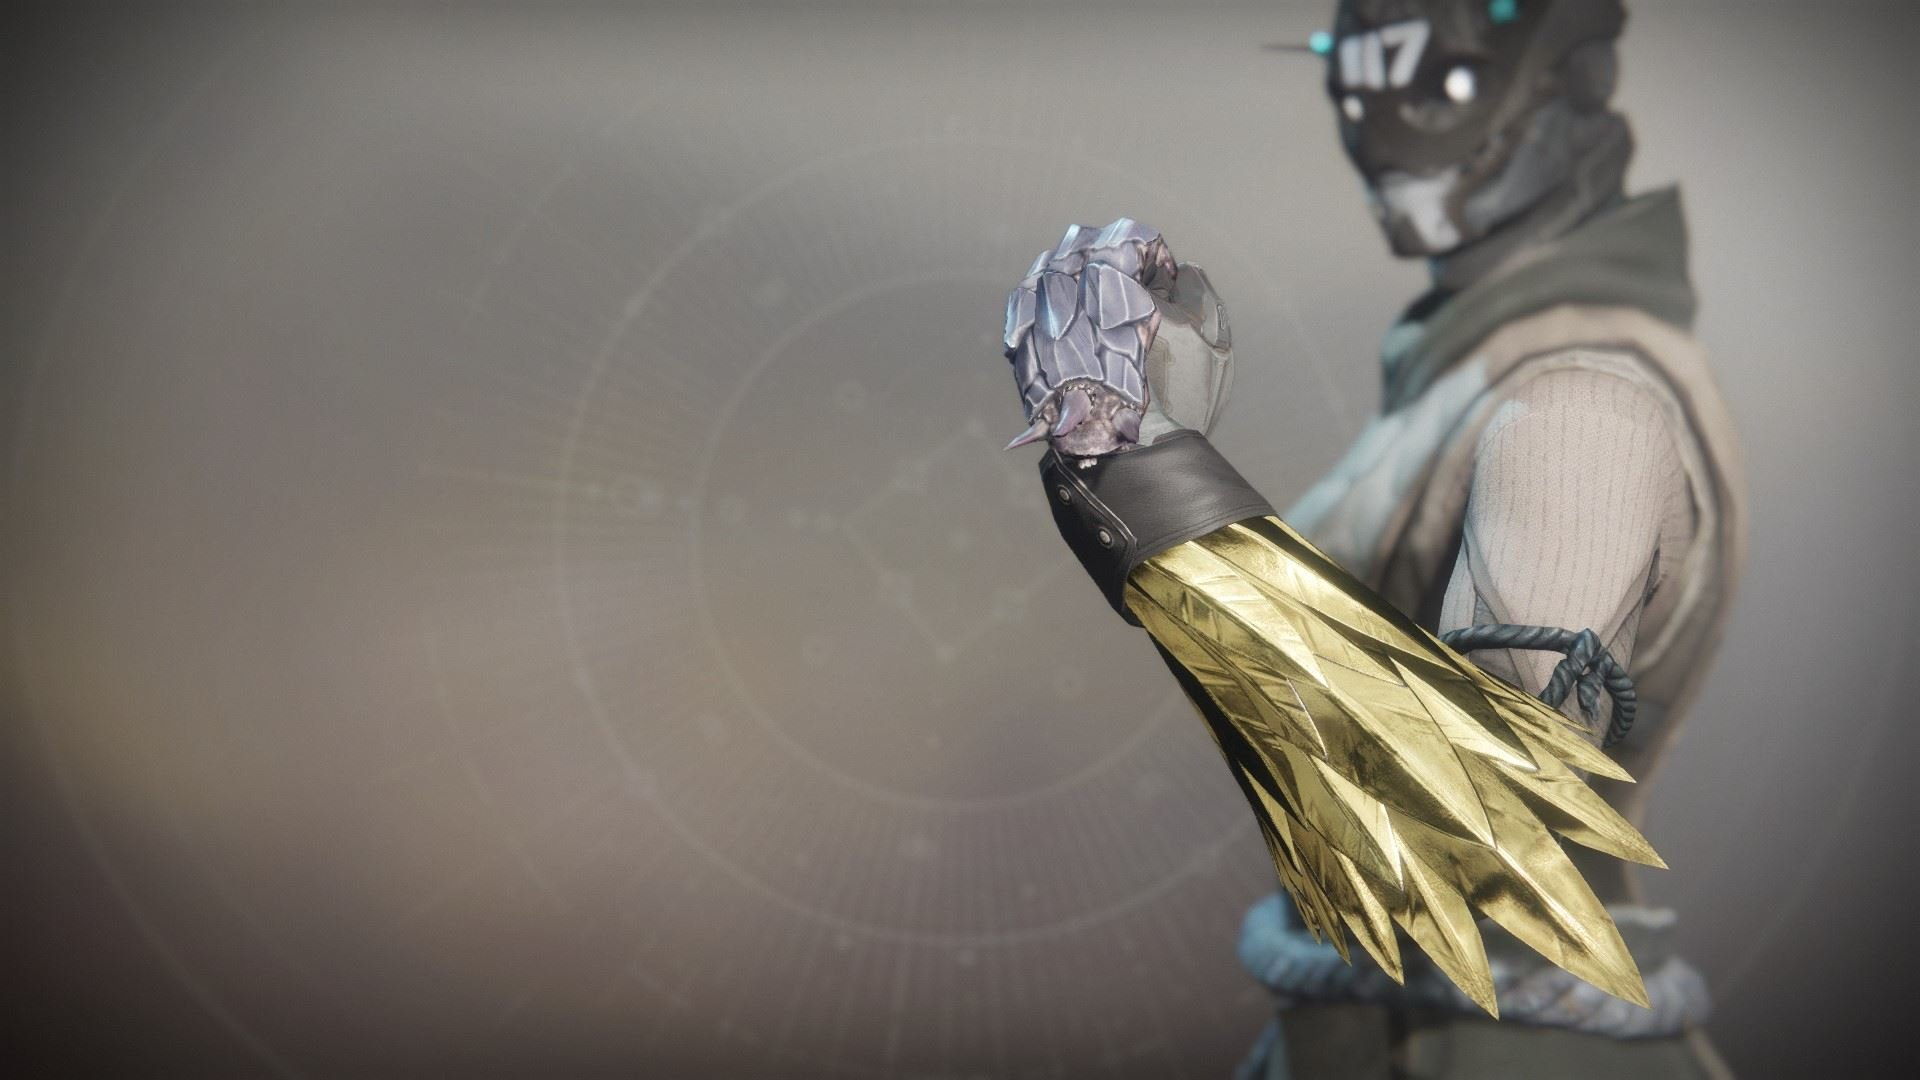 An in-game render of the Claws of Ahamkara.